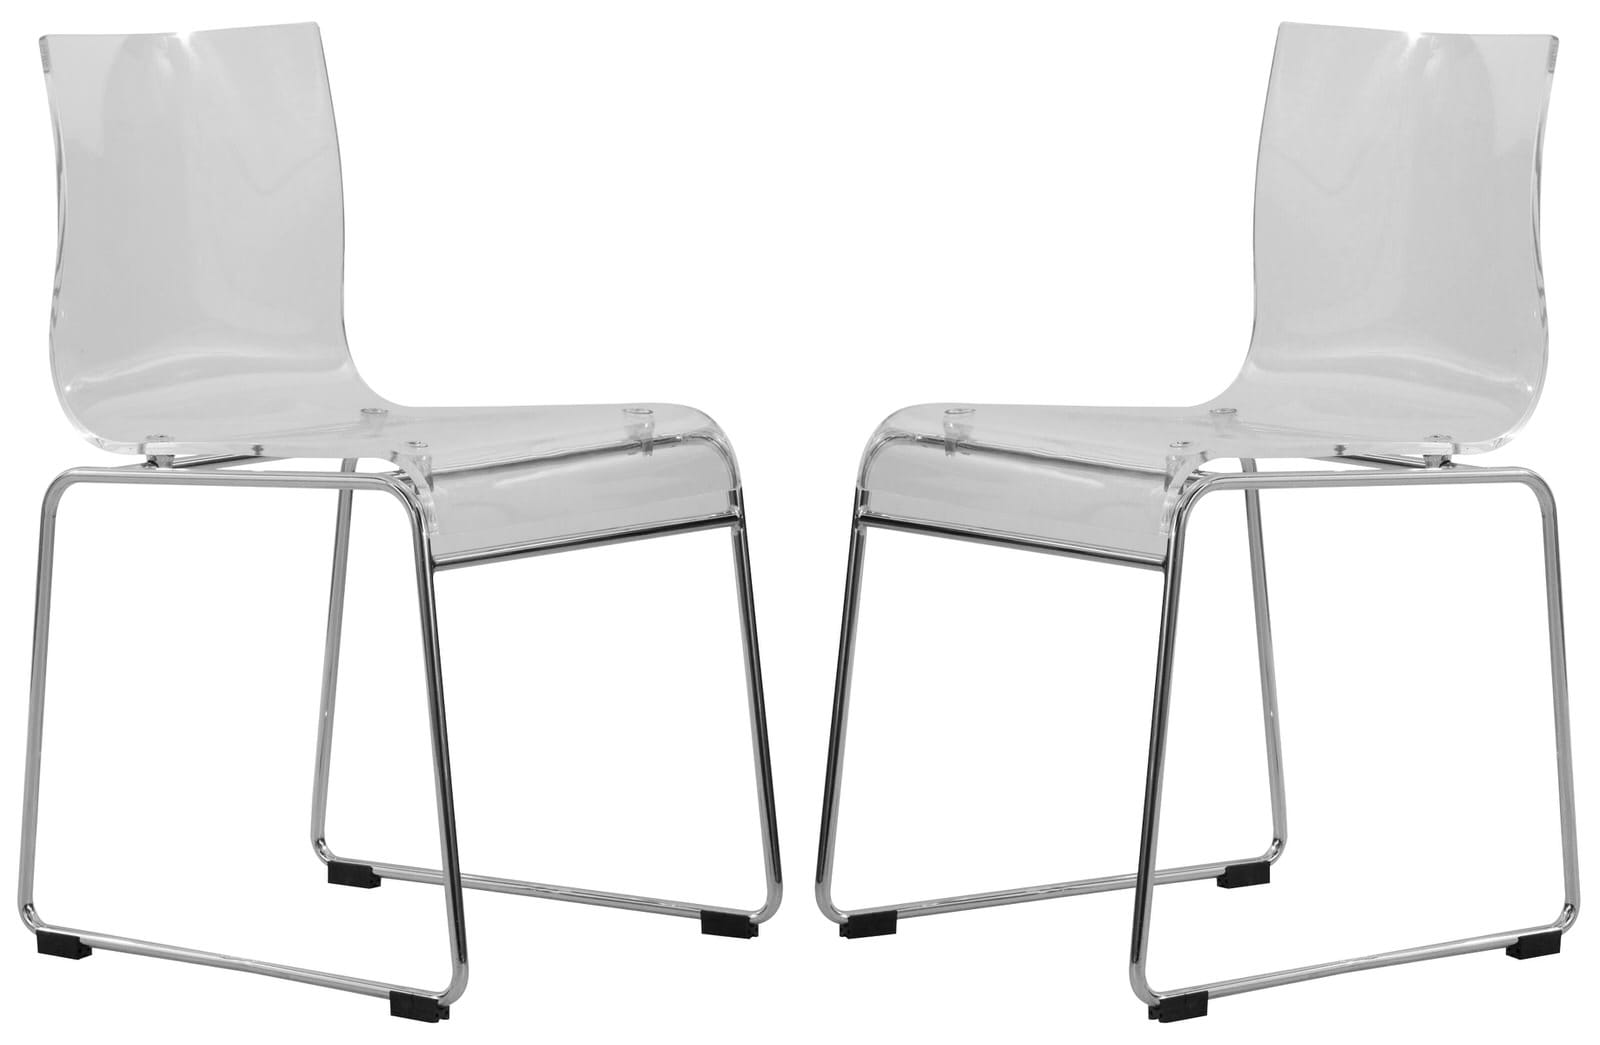 Terrific Lima Modern Clear Acrylic Chair Set Of 2 By Leisuremod Spiritservingveterans Wood Chair Design Ideas Spiritservingveteransorg